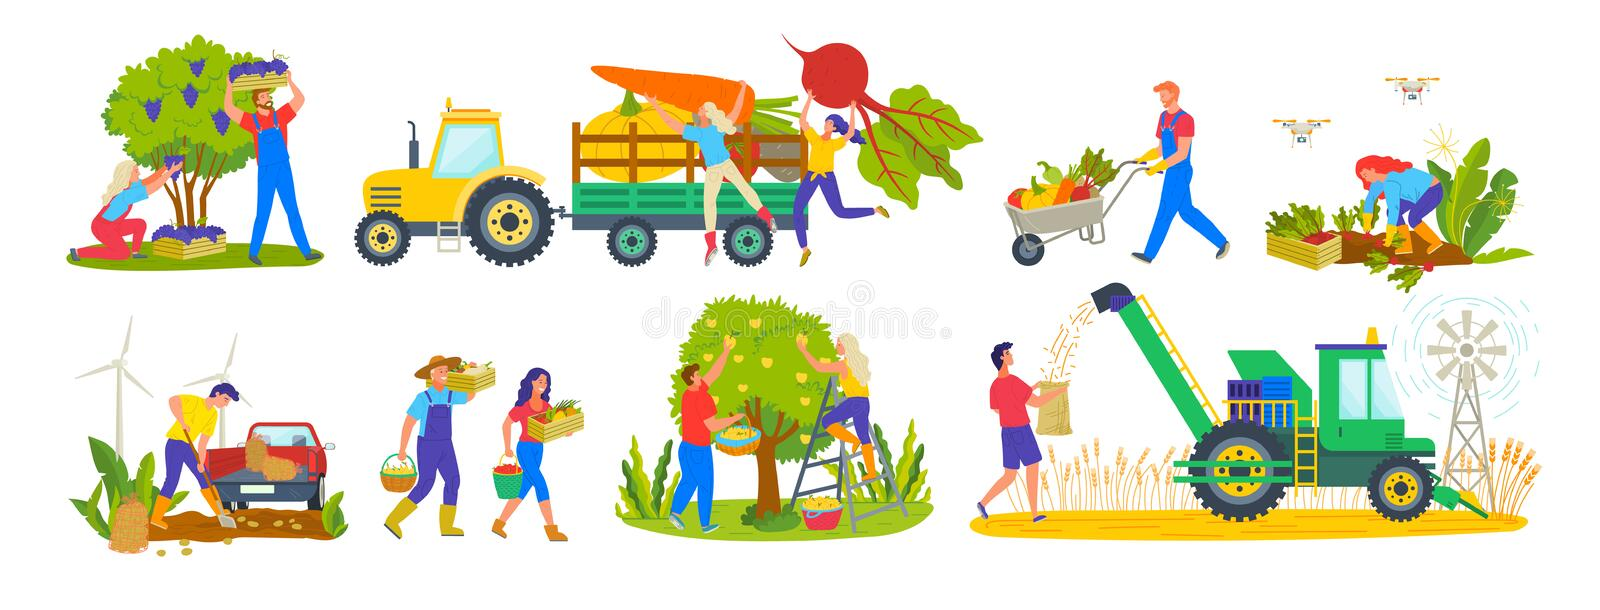 Harvesting Season Tractor and Agriculture Workers. Husbandry and harvest vector, tractor and products, garden farme, carrots and beetroots pumpkin and veggies vector illustration